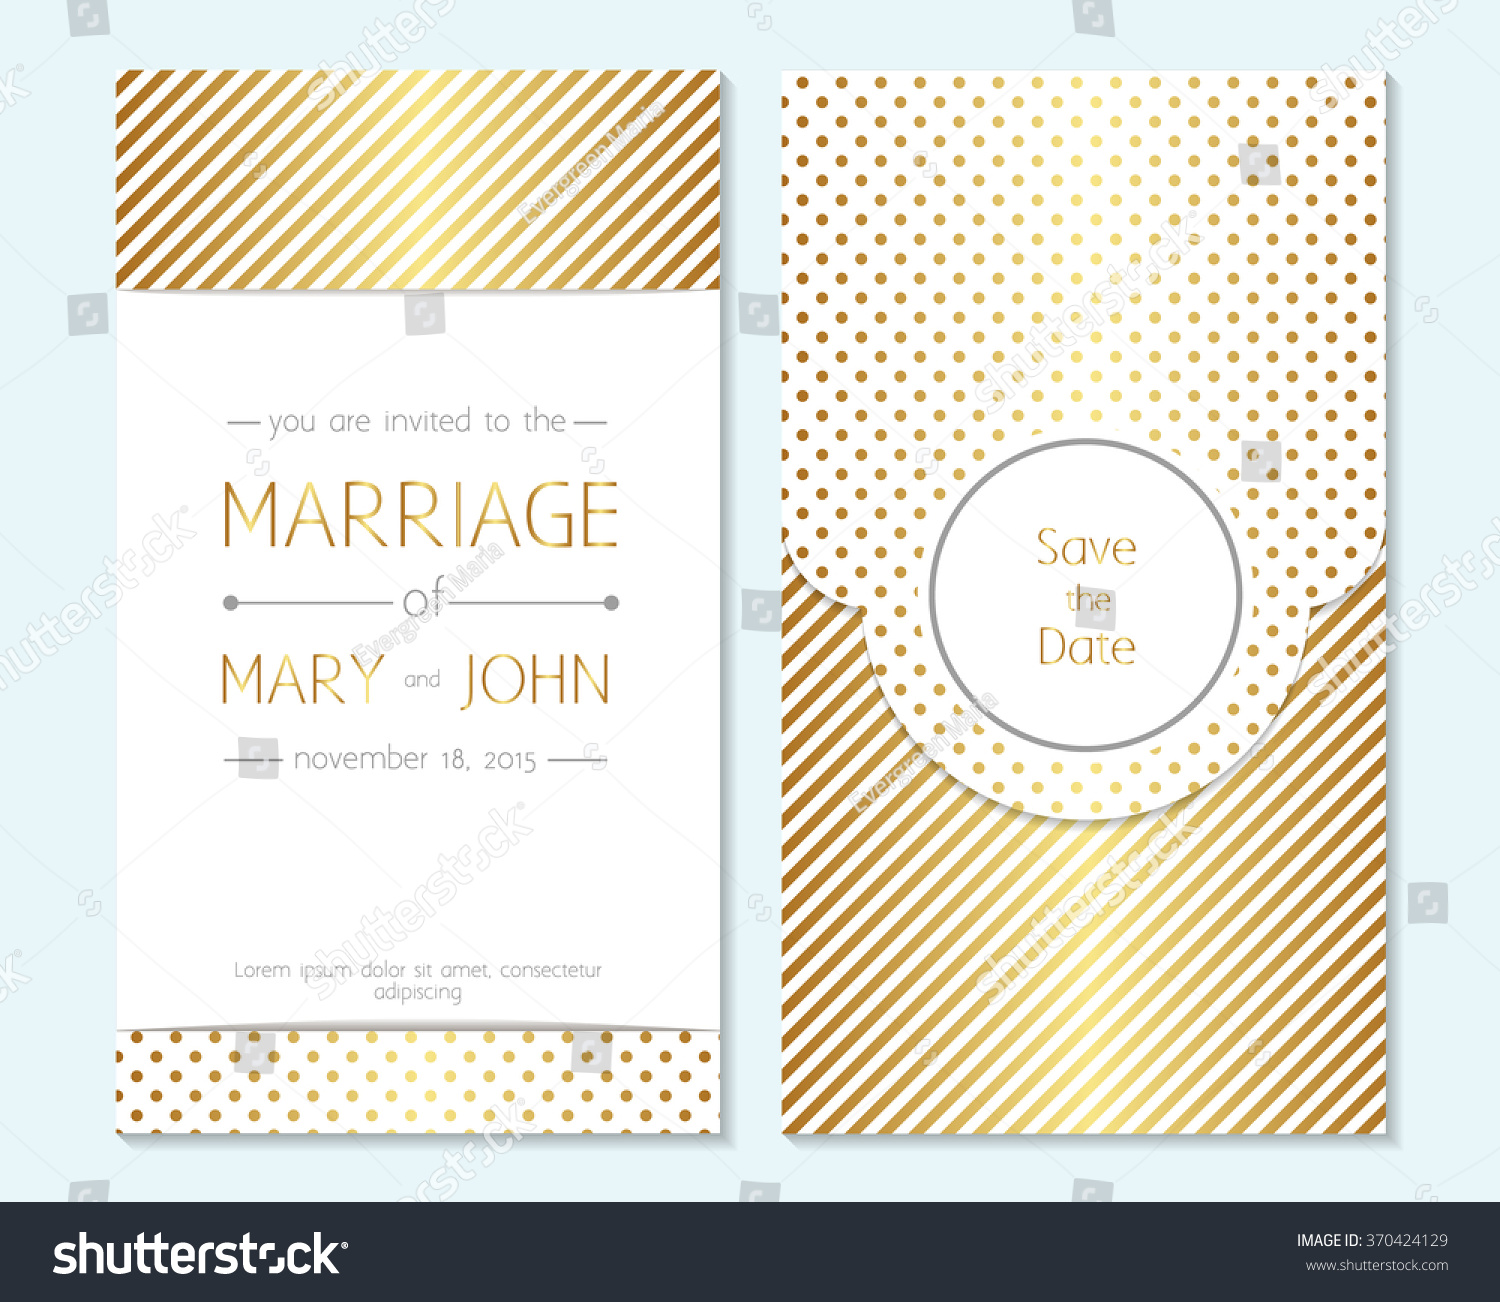 gold wedding invitation thank you card save the date cards baby shower menu flyer template. Black Bedroom Furniture Sets. Home Design Ideas